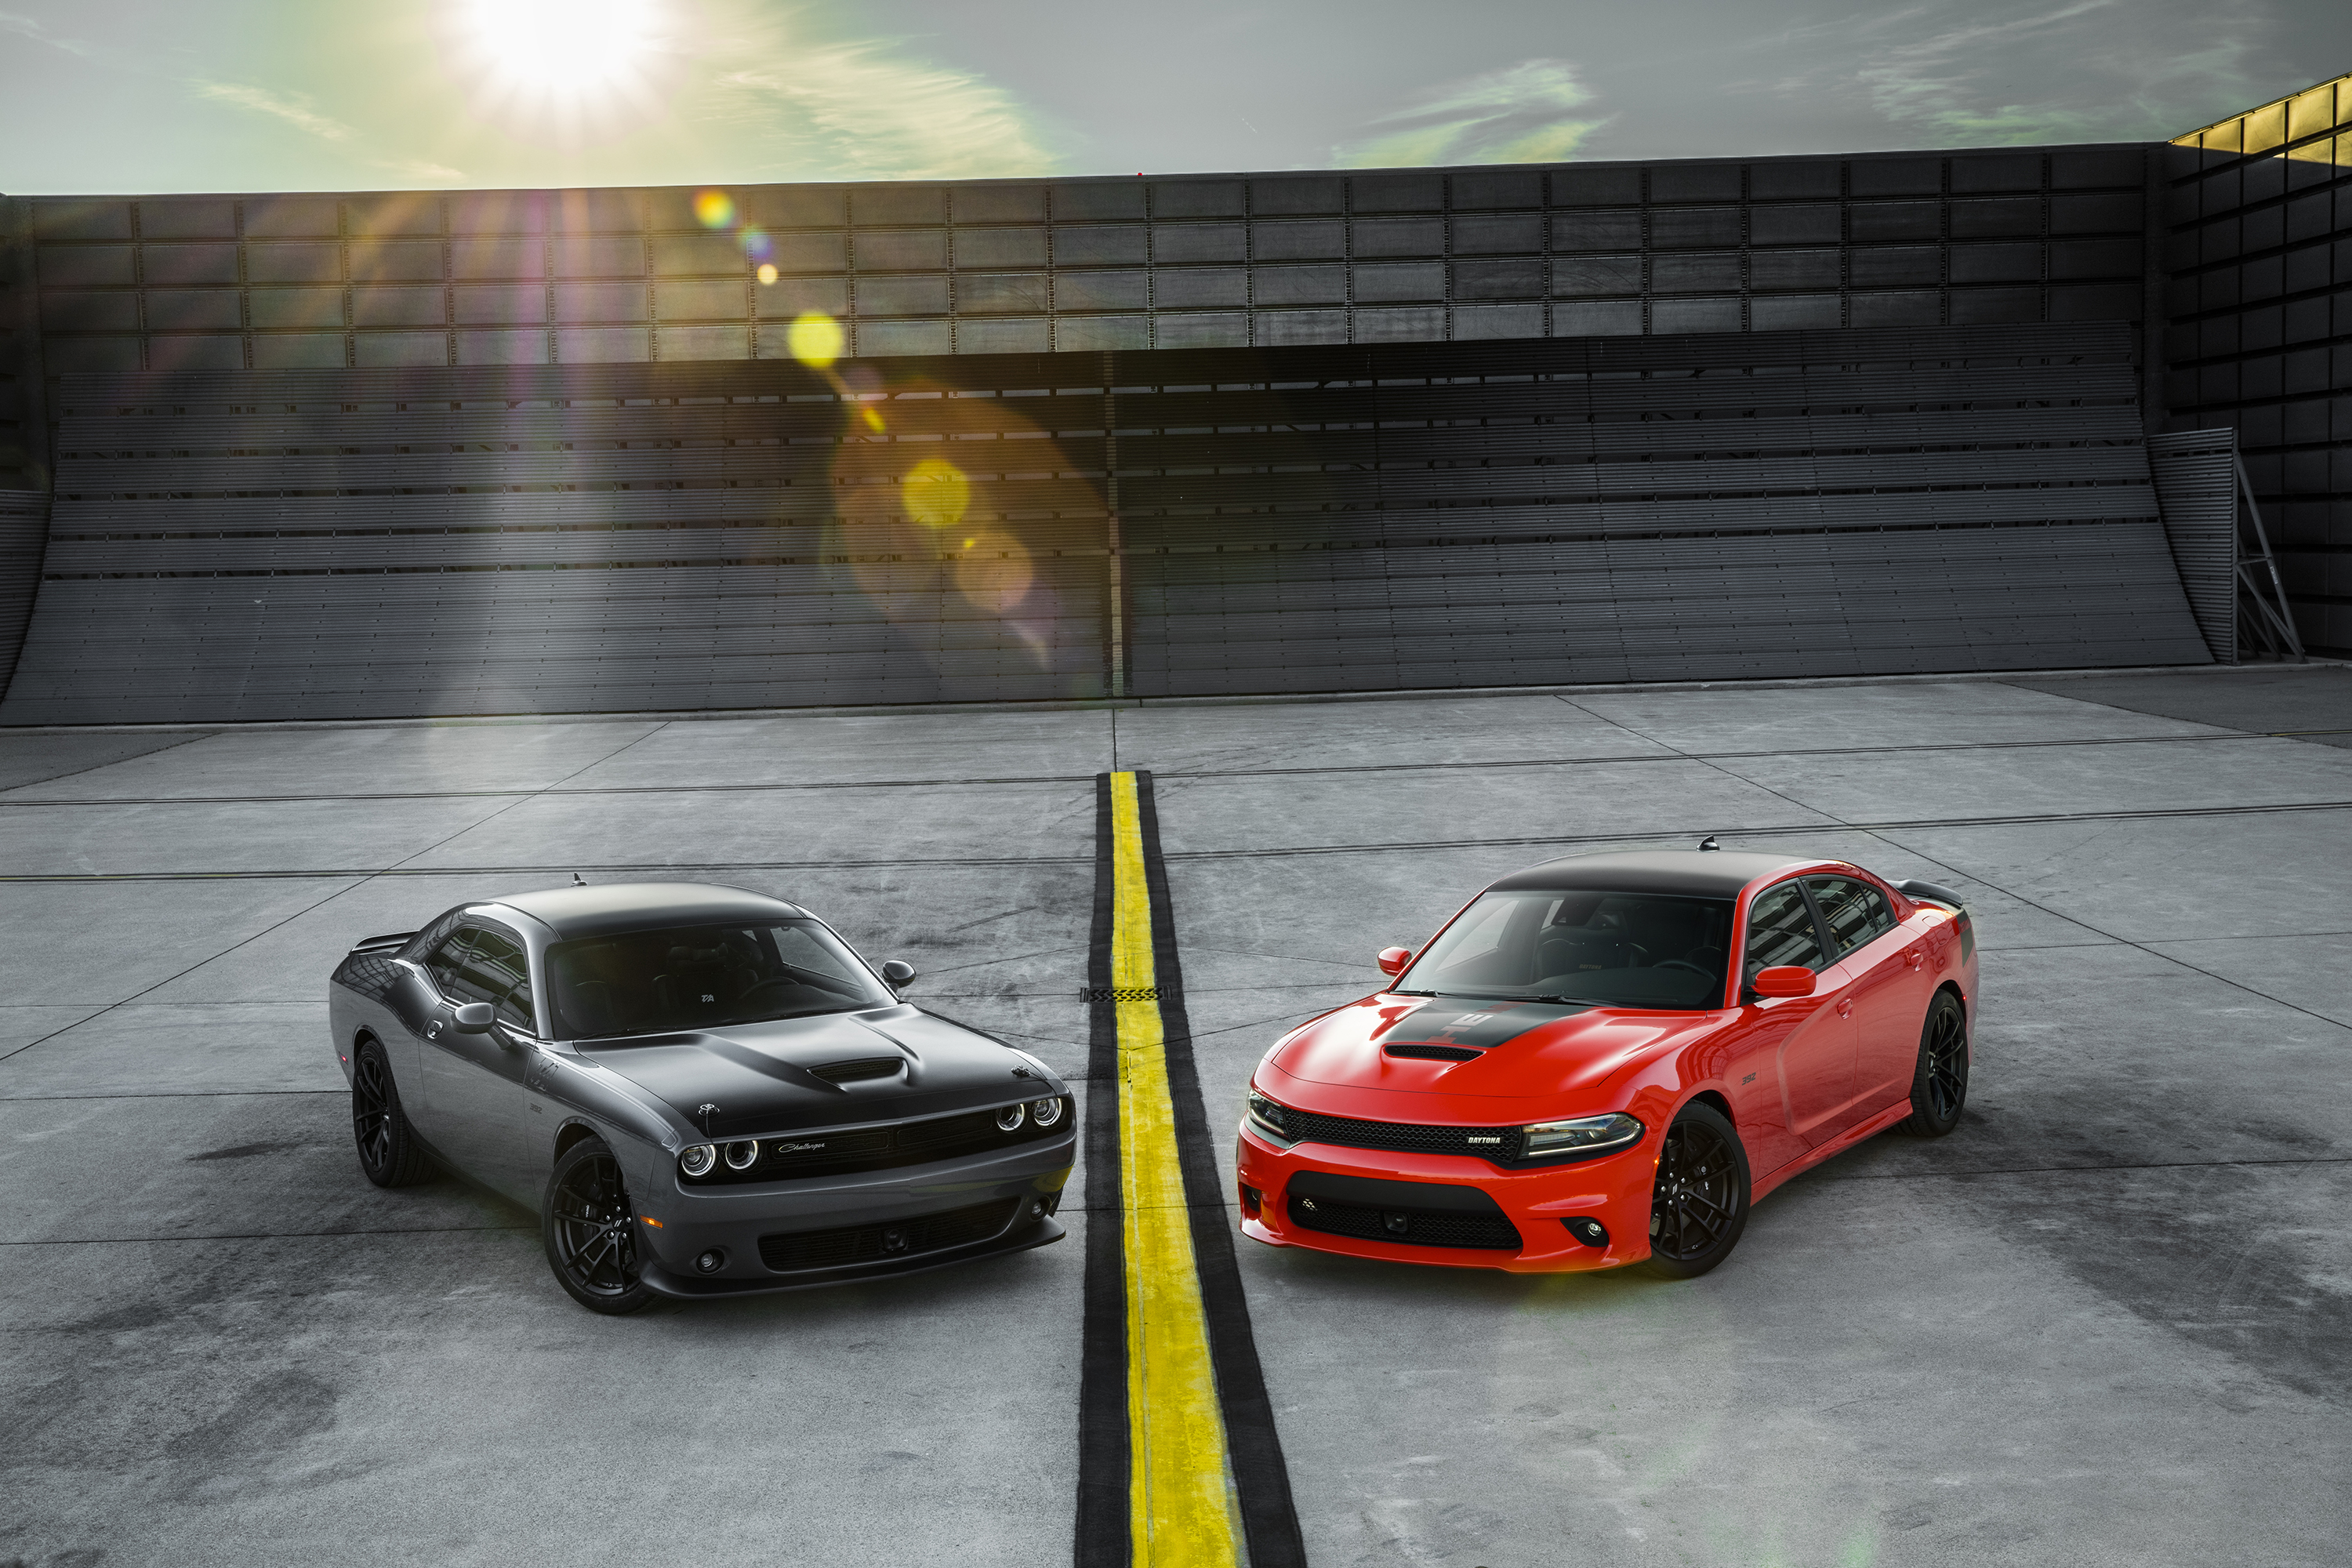 2017 Dodge Challenger T/A 392  (left) and 2017 Dodge Charger Day